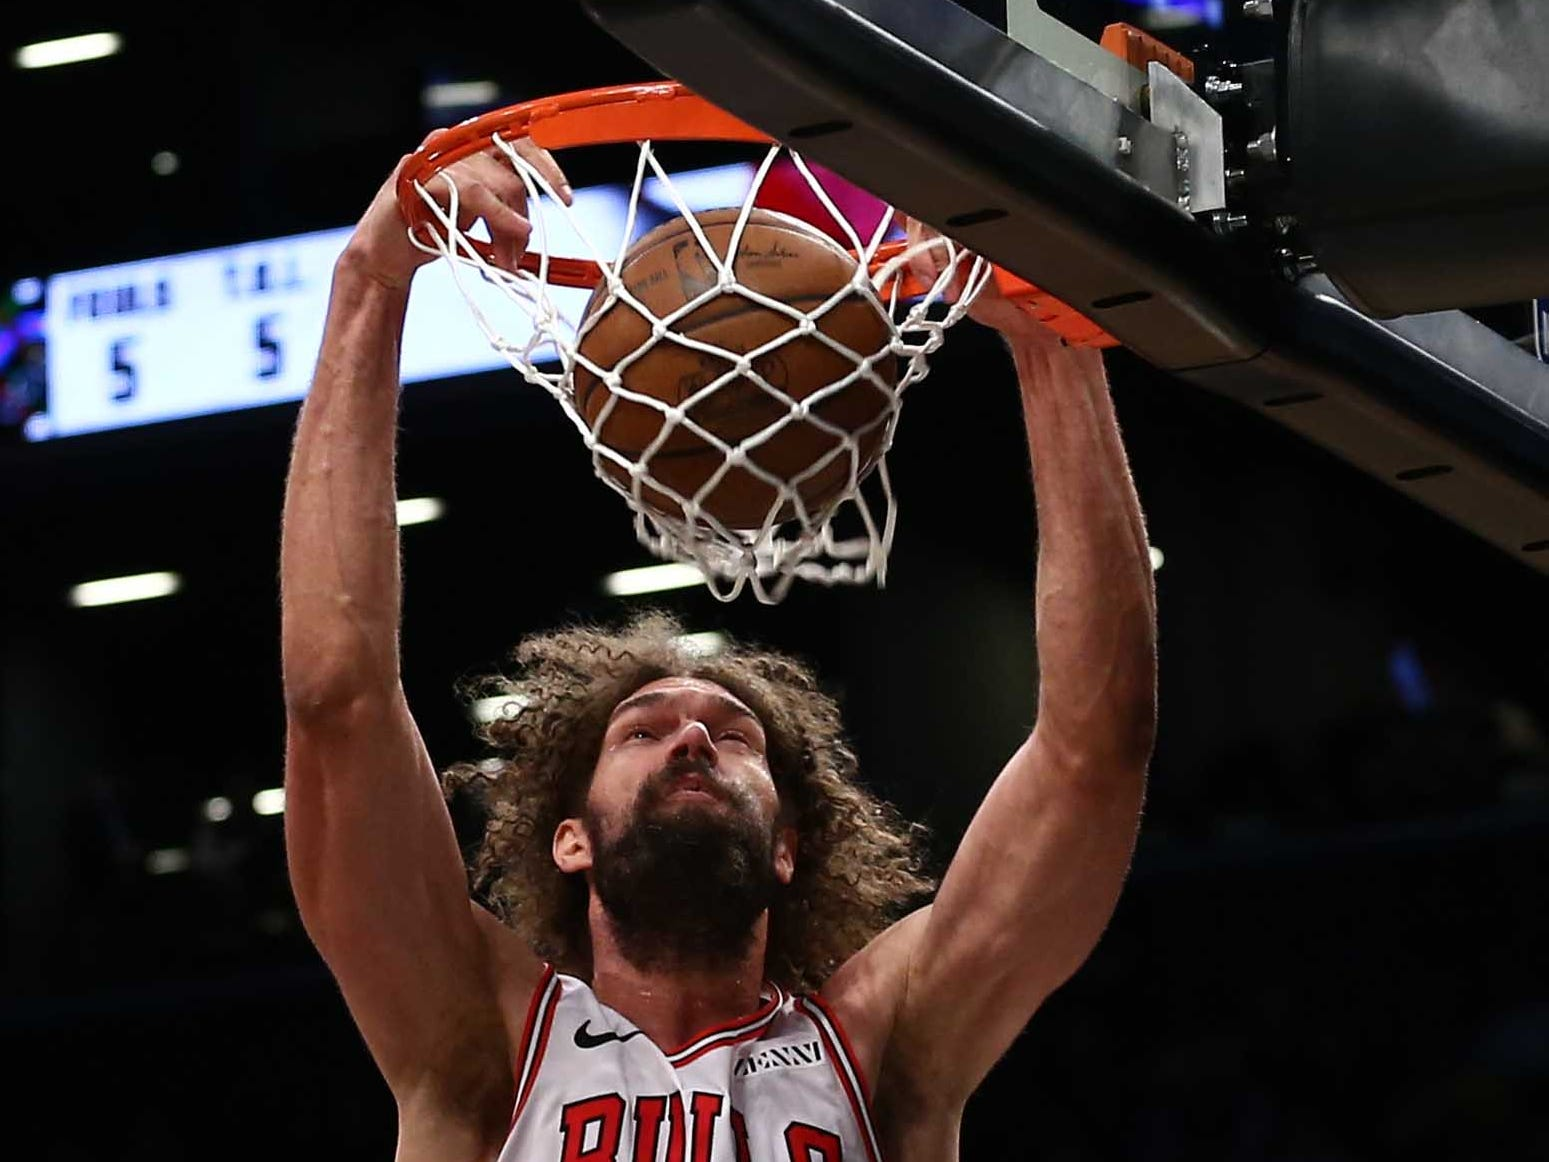 Jan. 29: The Chicago Bulls' Robin Lopez scores against the Brooklyn Nets in the third quarter at Barclays Center.